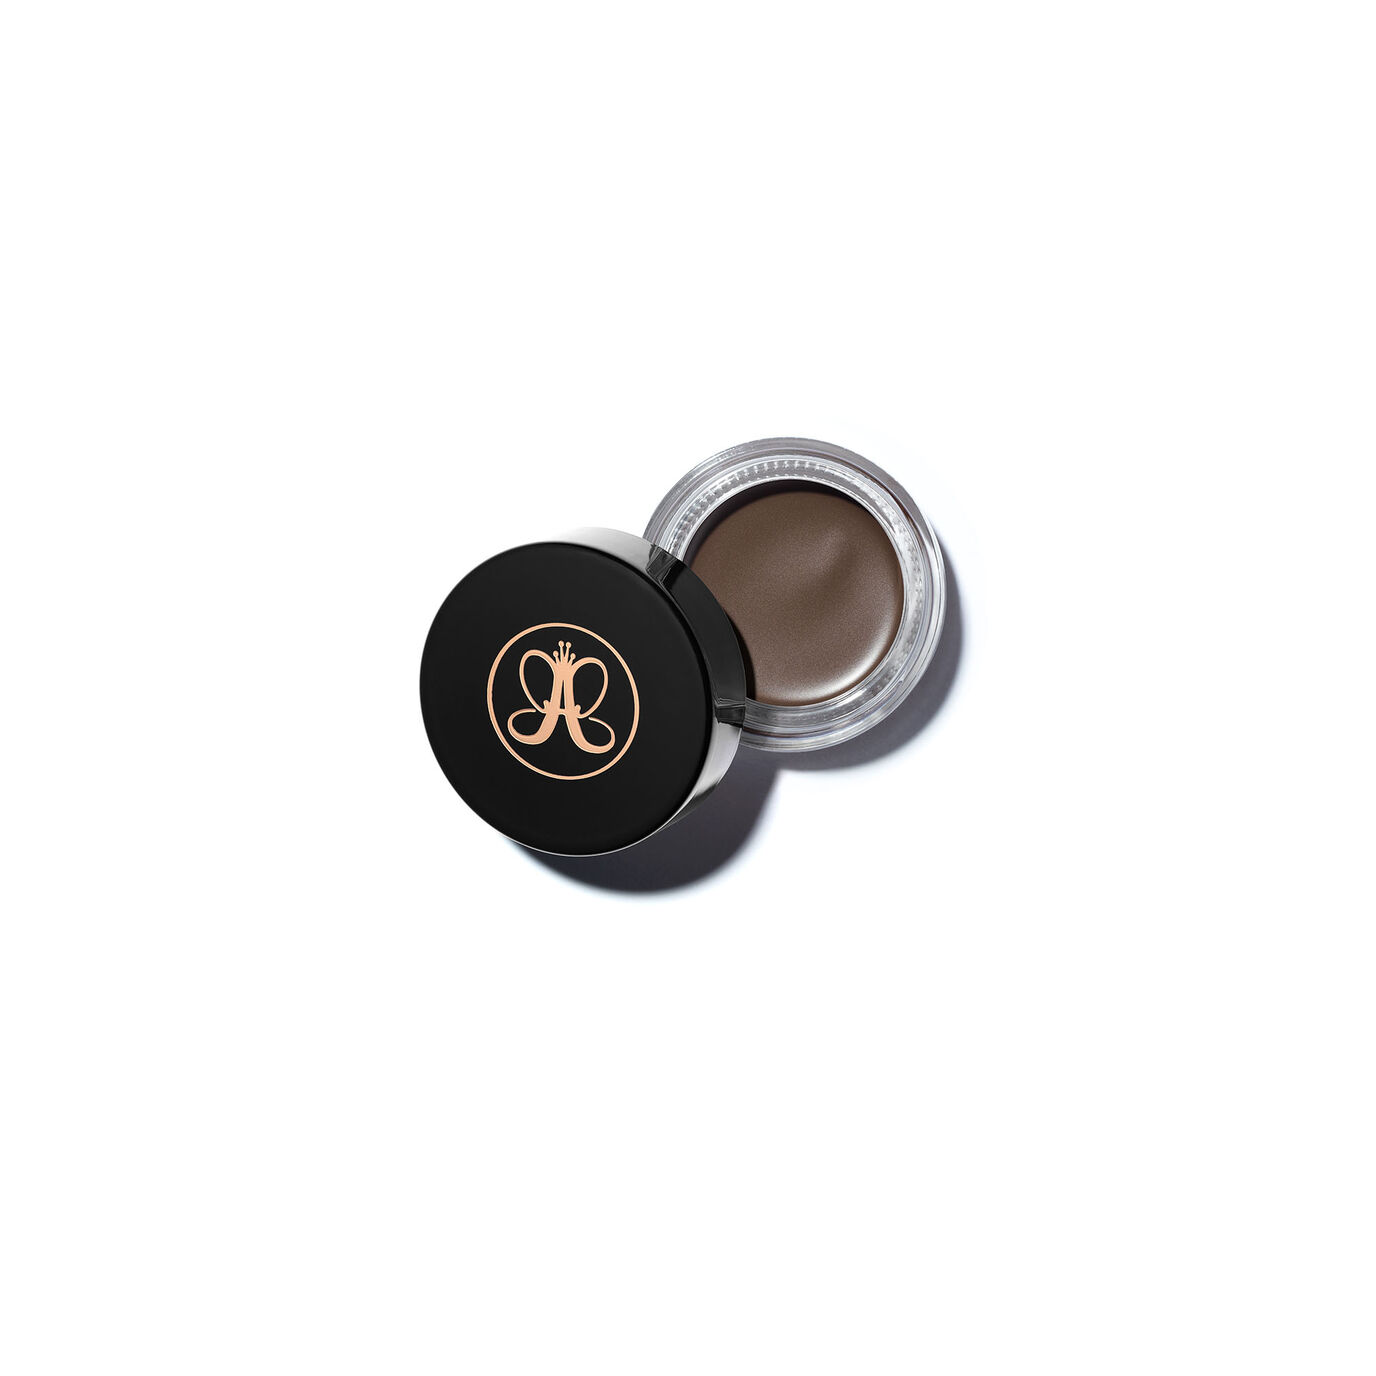 View Anastasia Beverly Hills Eyebrow Shades Pictures